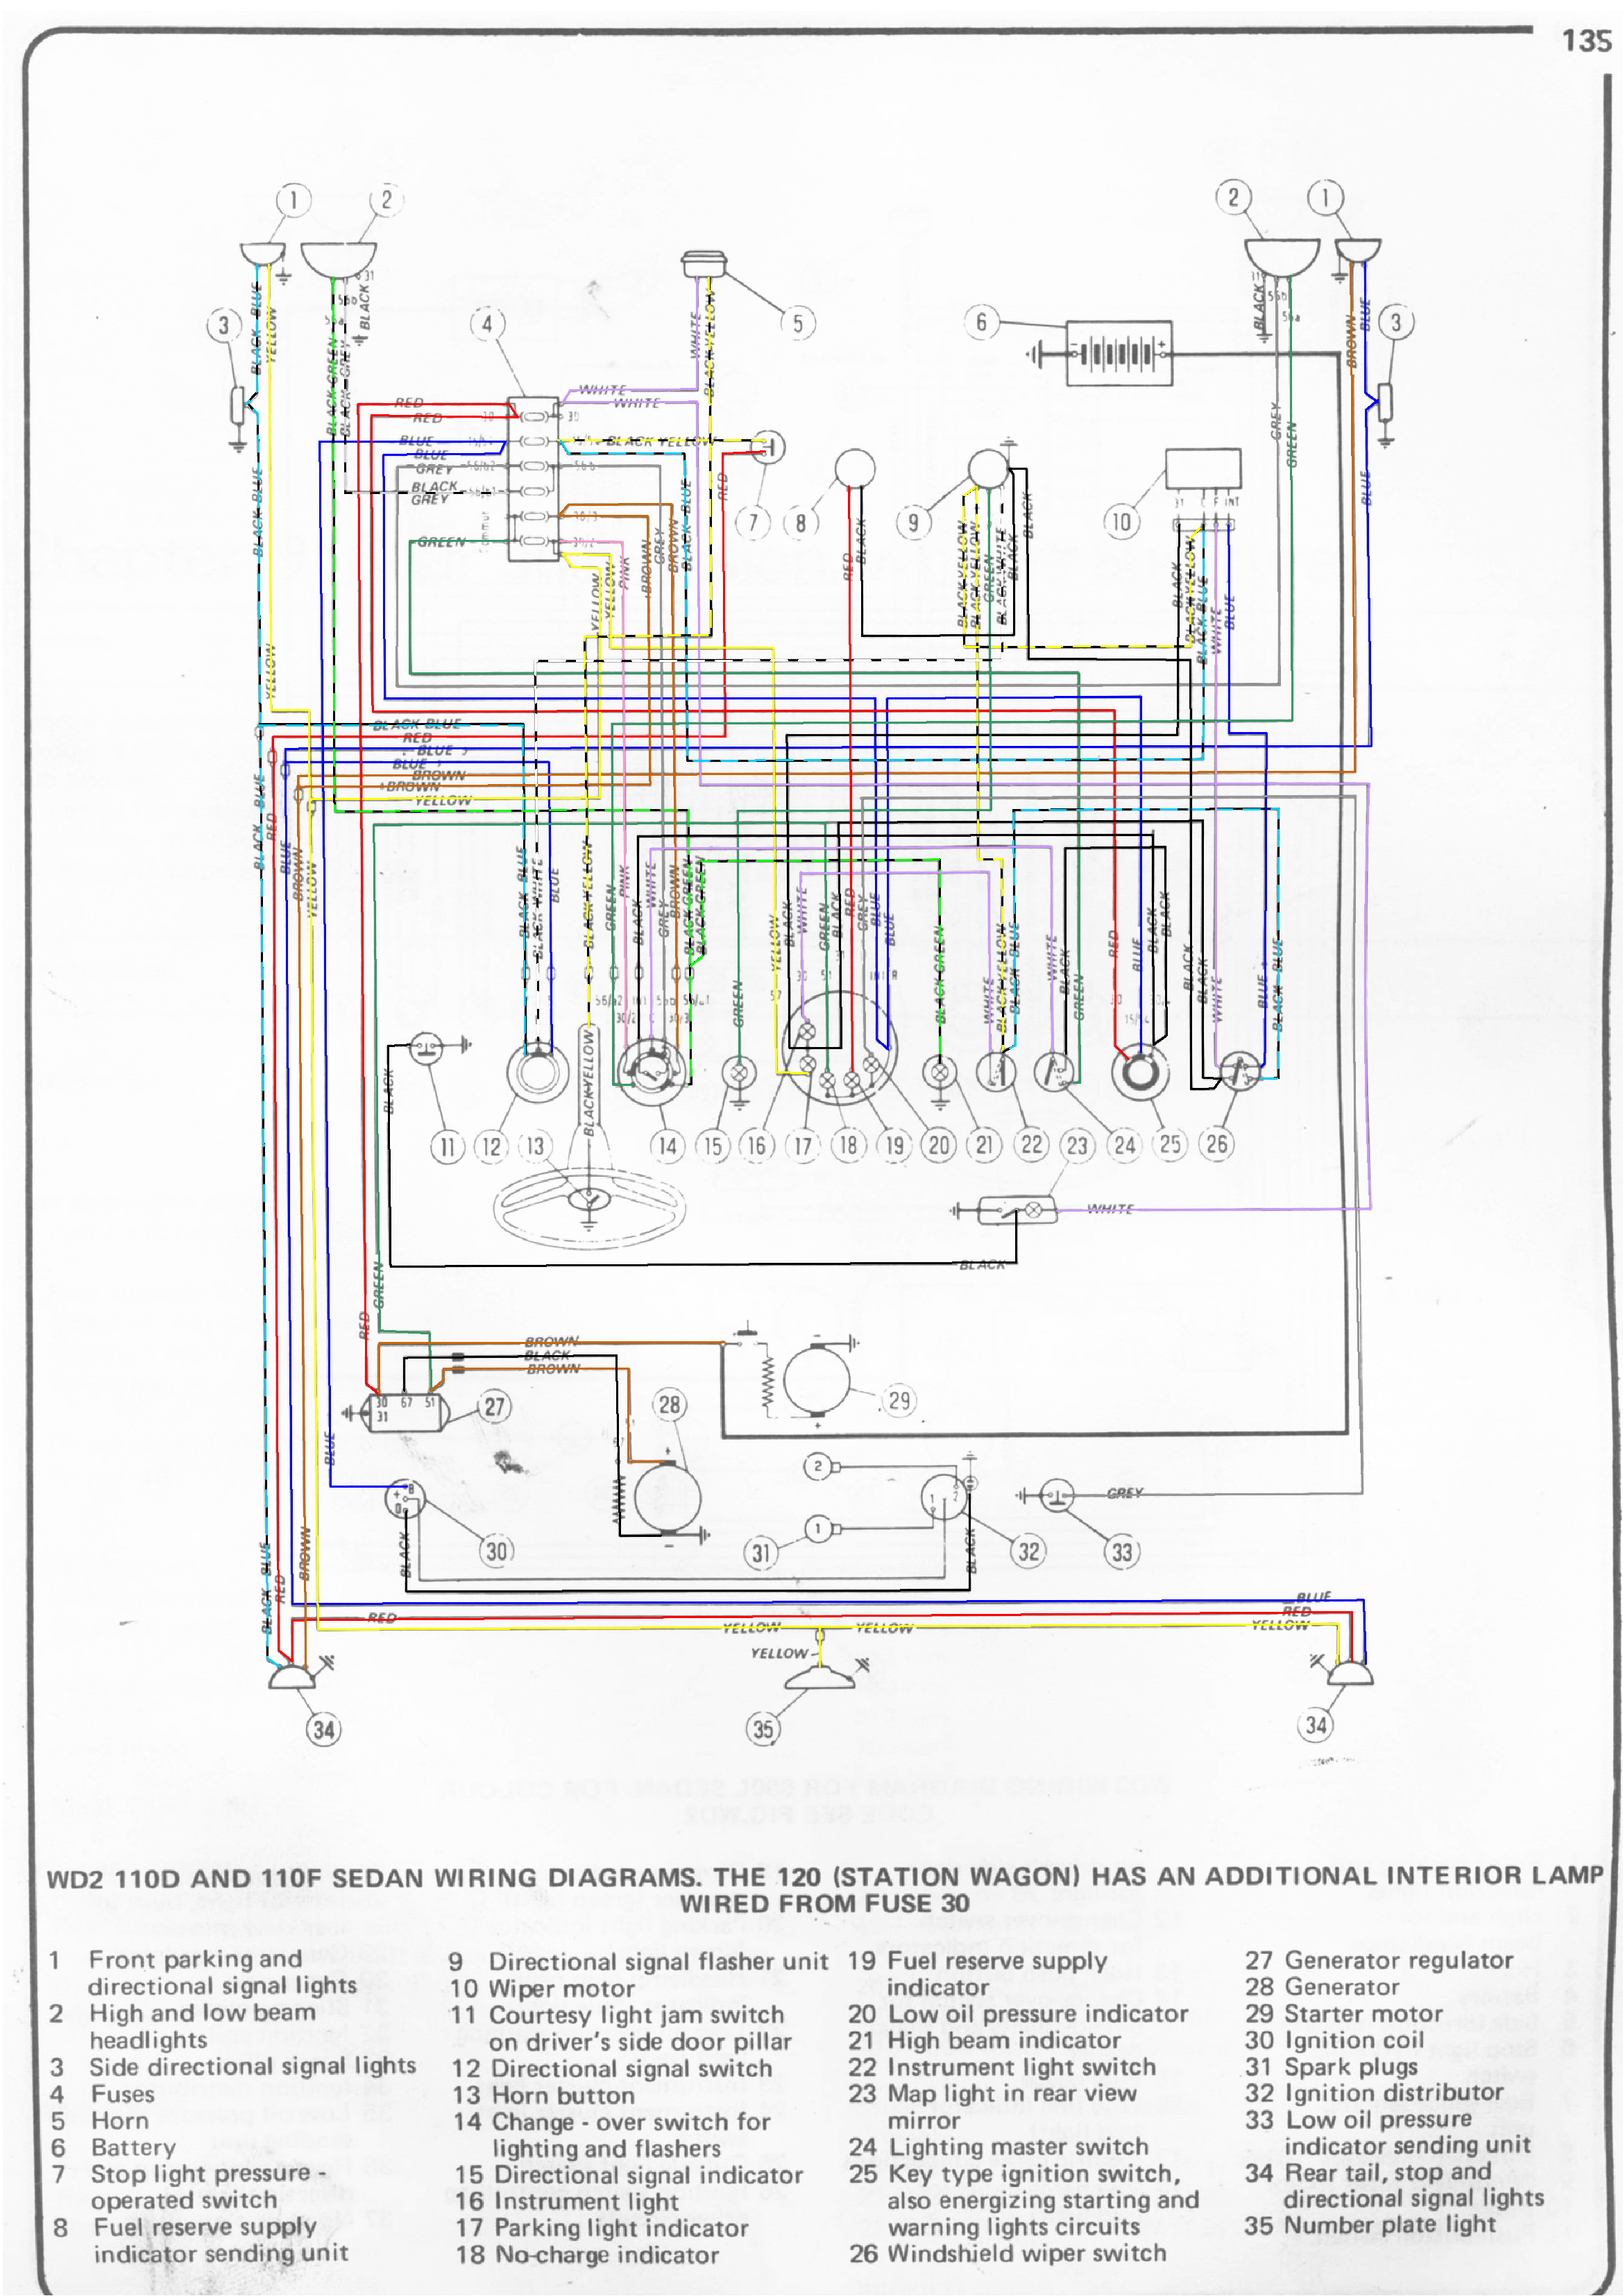 1969 Fiat 500 Starter Wiring Diagram Diagrams For Mg Midget 1973 Library